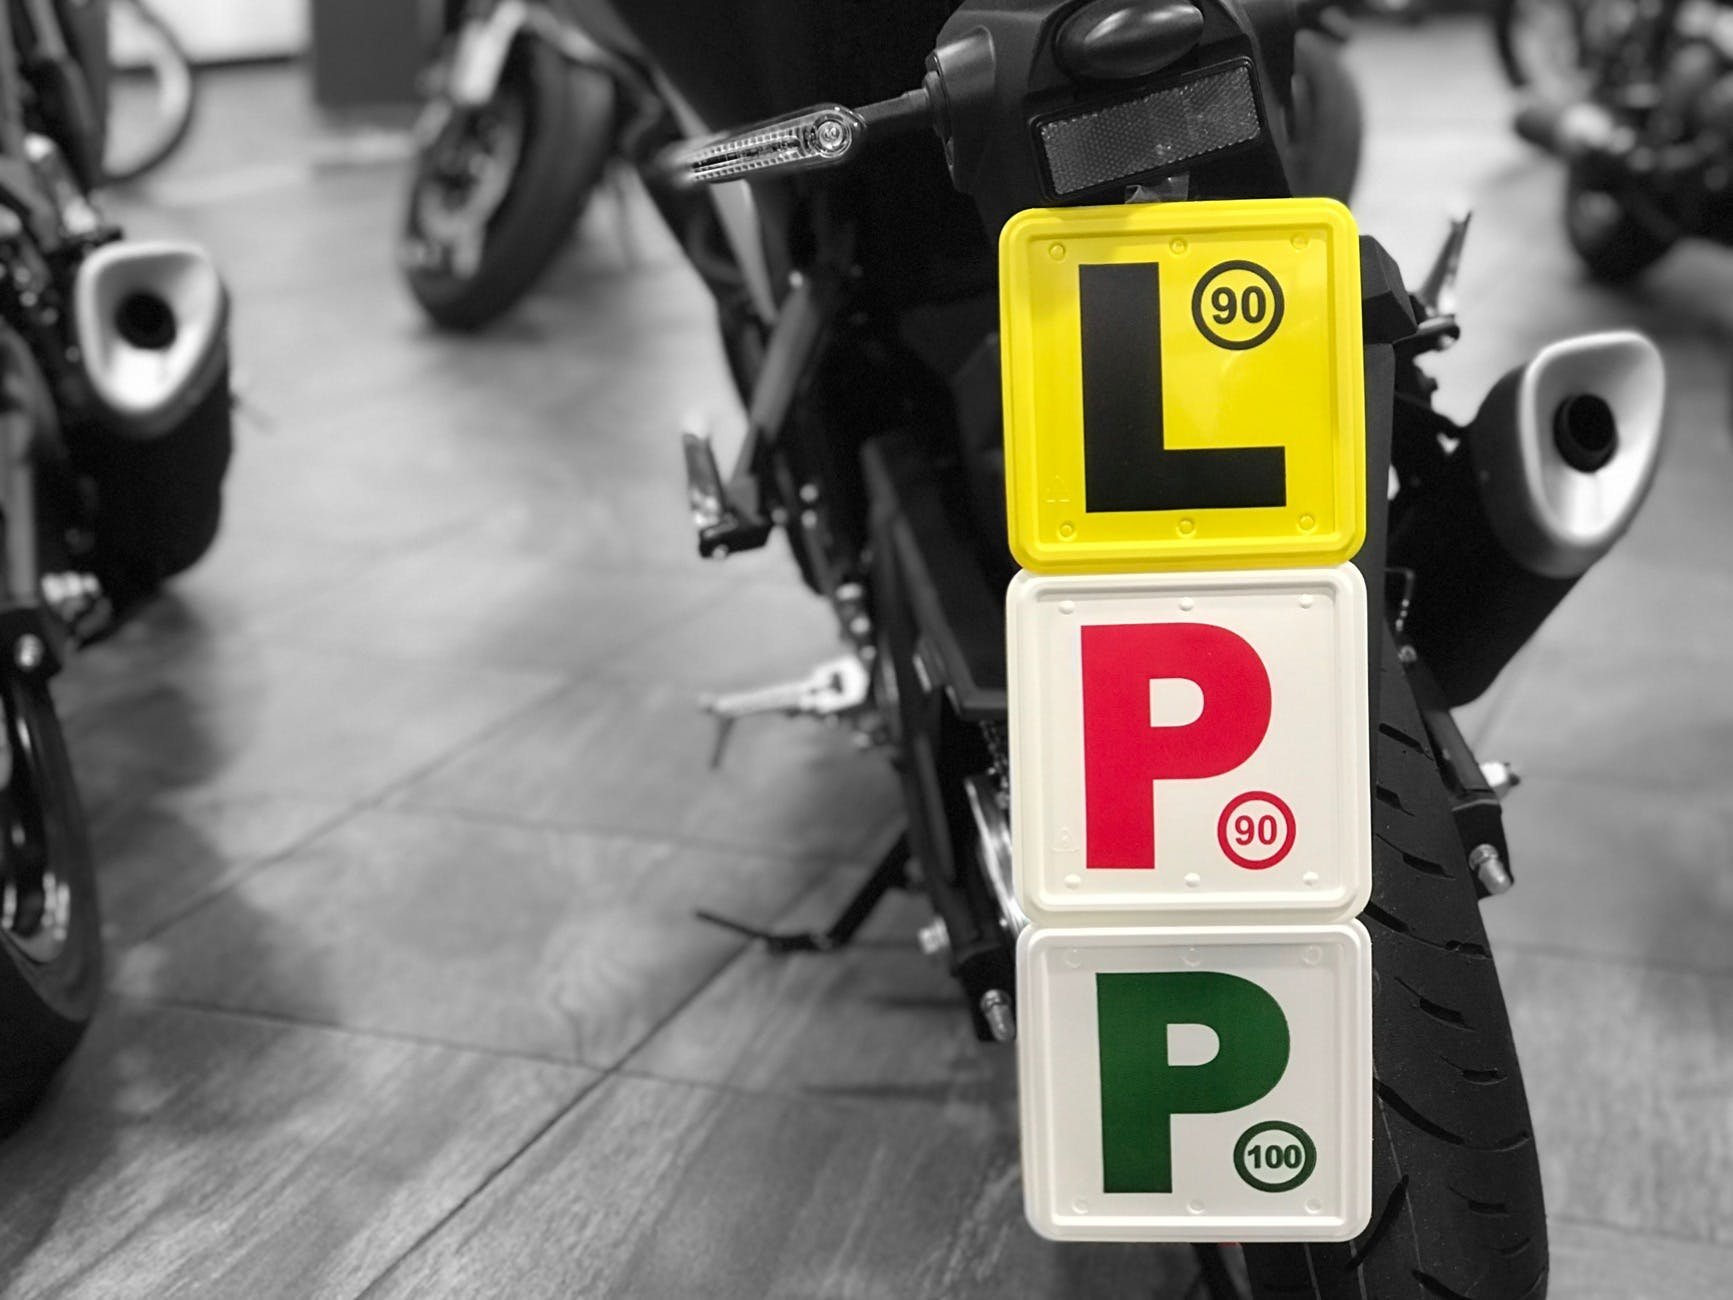 L, red P and green P plate all stuck together on the back of a motorcycle